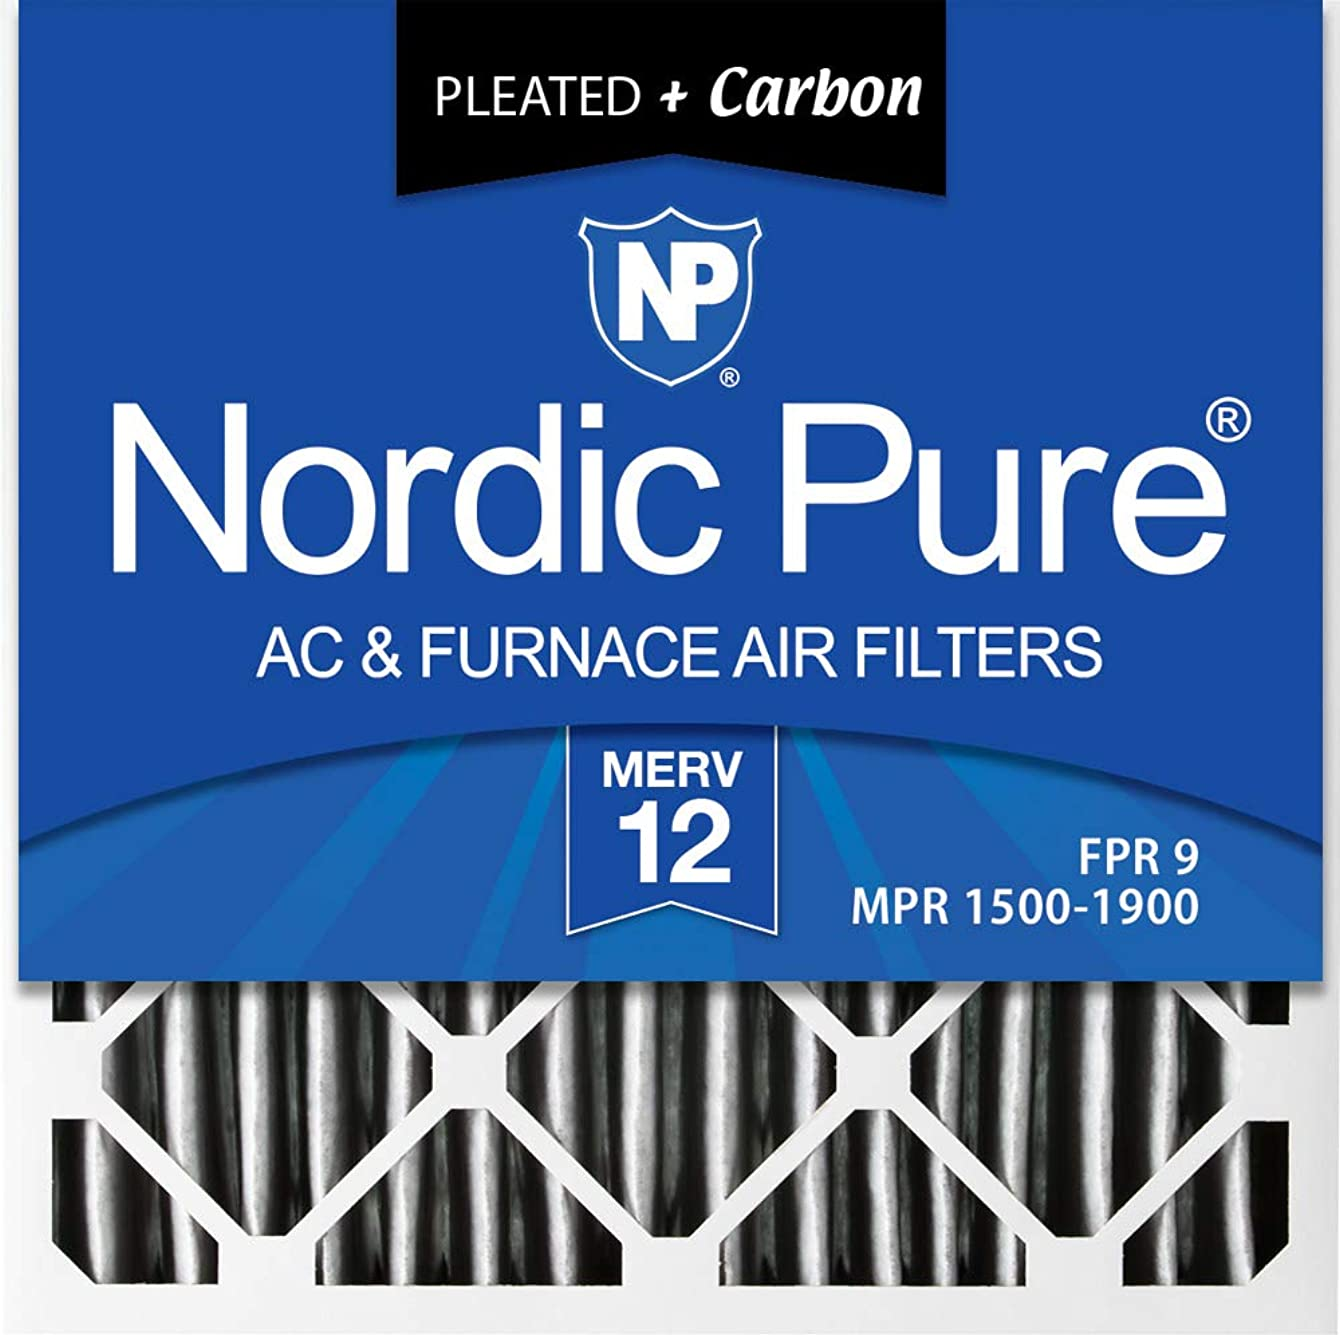 Nordic Pure 24x24x1 MERV 12 Pleated Plus Carbon AC Furnace Air Filters, 24x24x1PM12C, 6 Piece